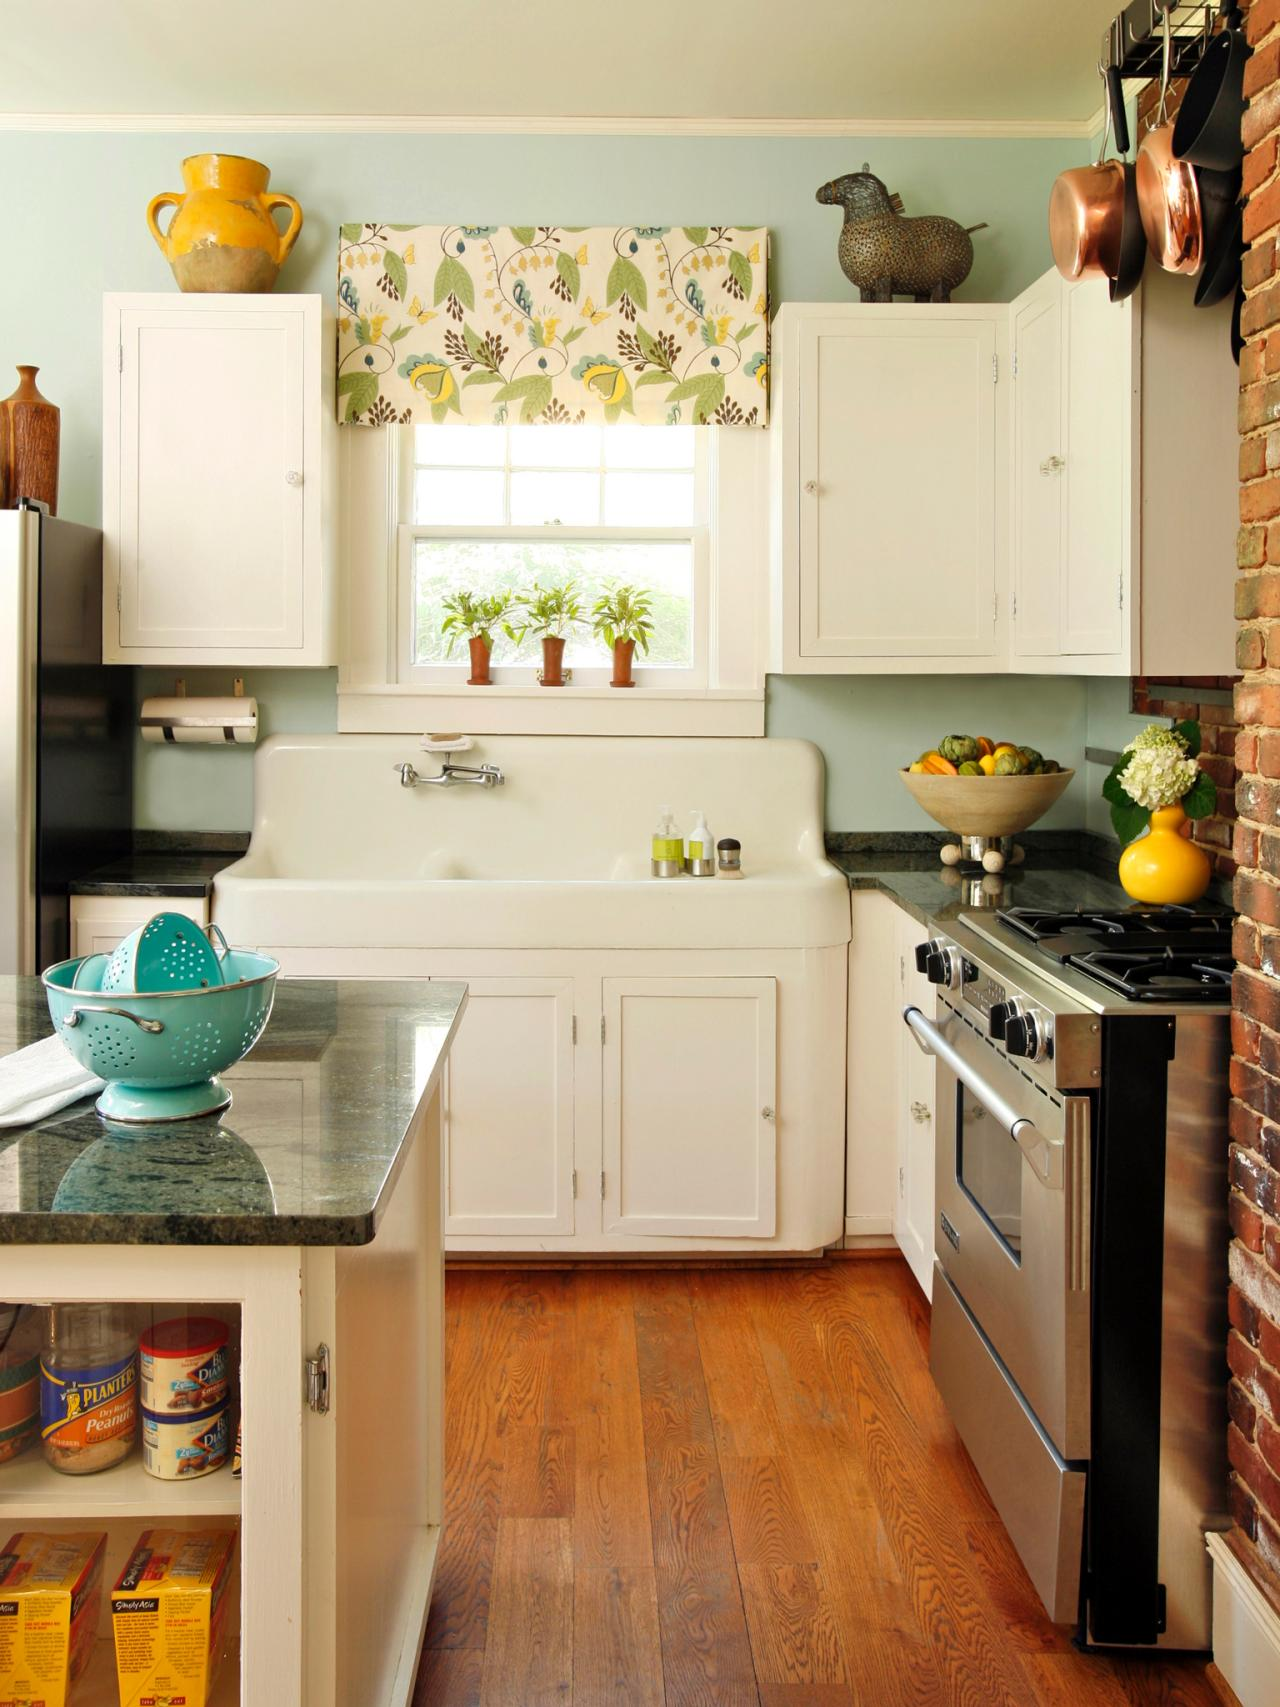 inexpensive kitchen backsplash ideas + pictures from hgtv | hgtv